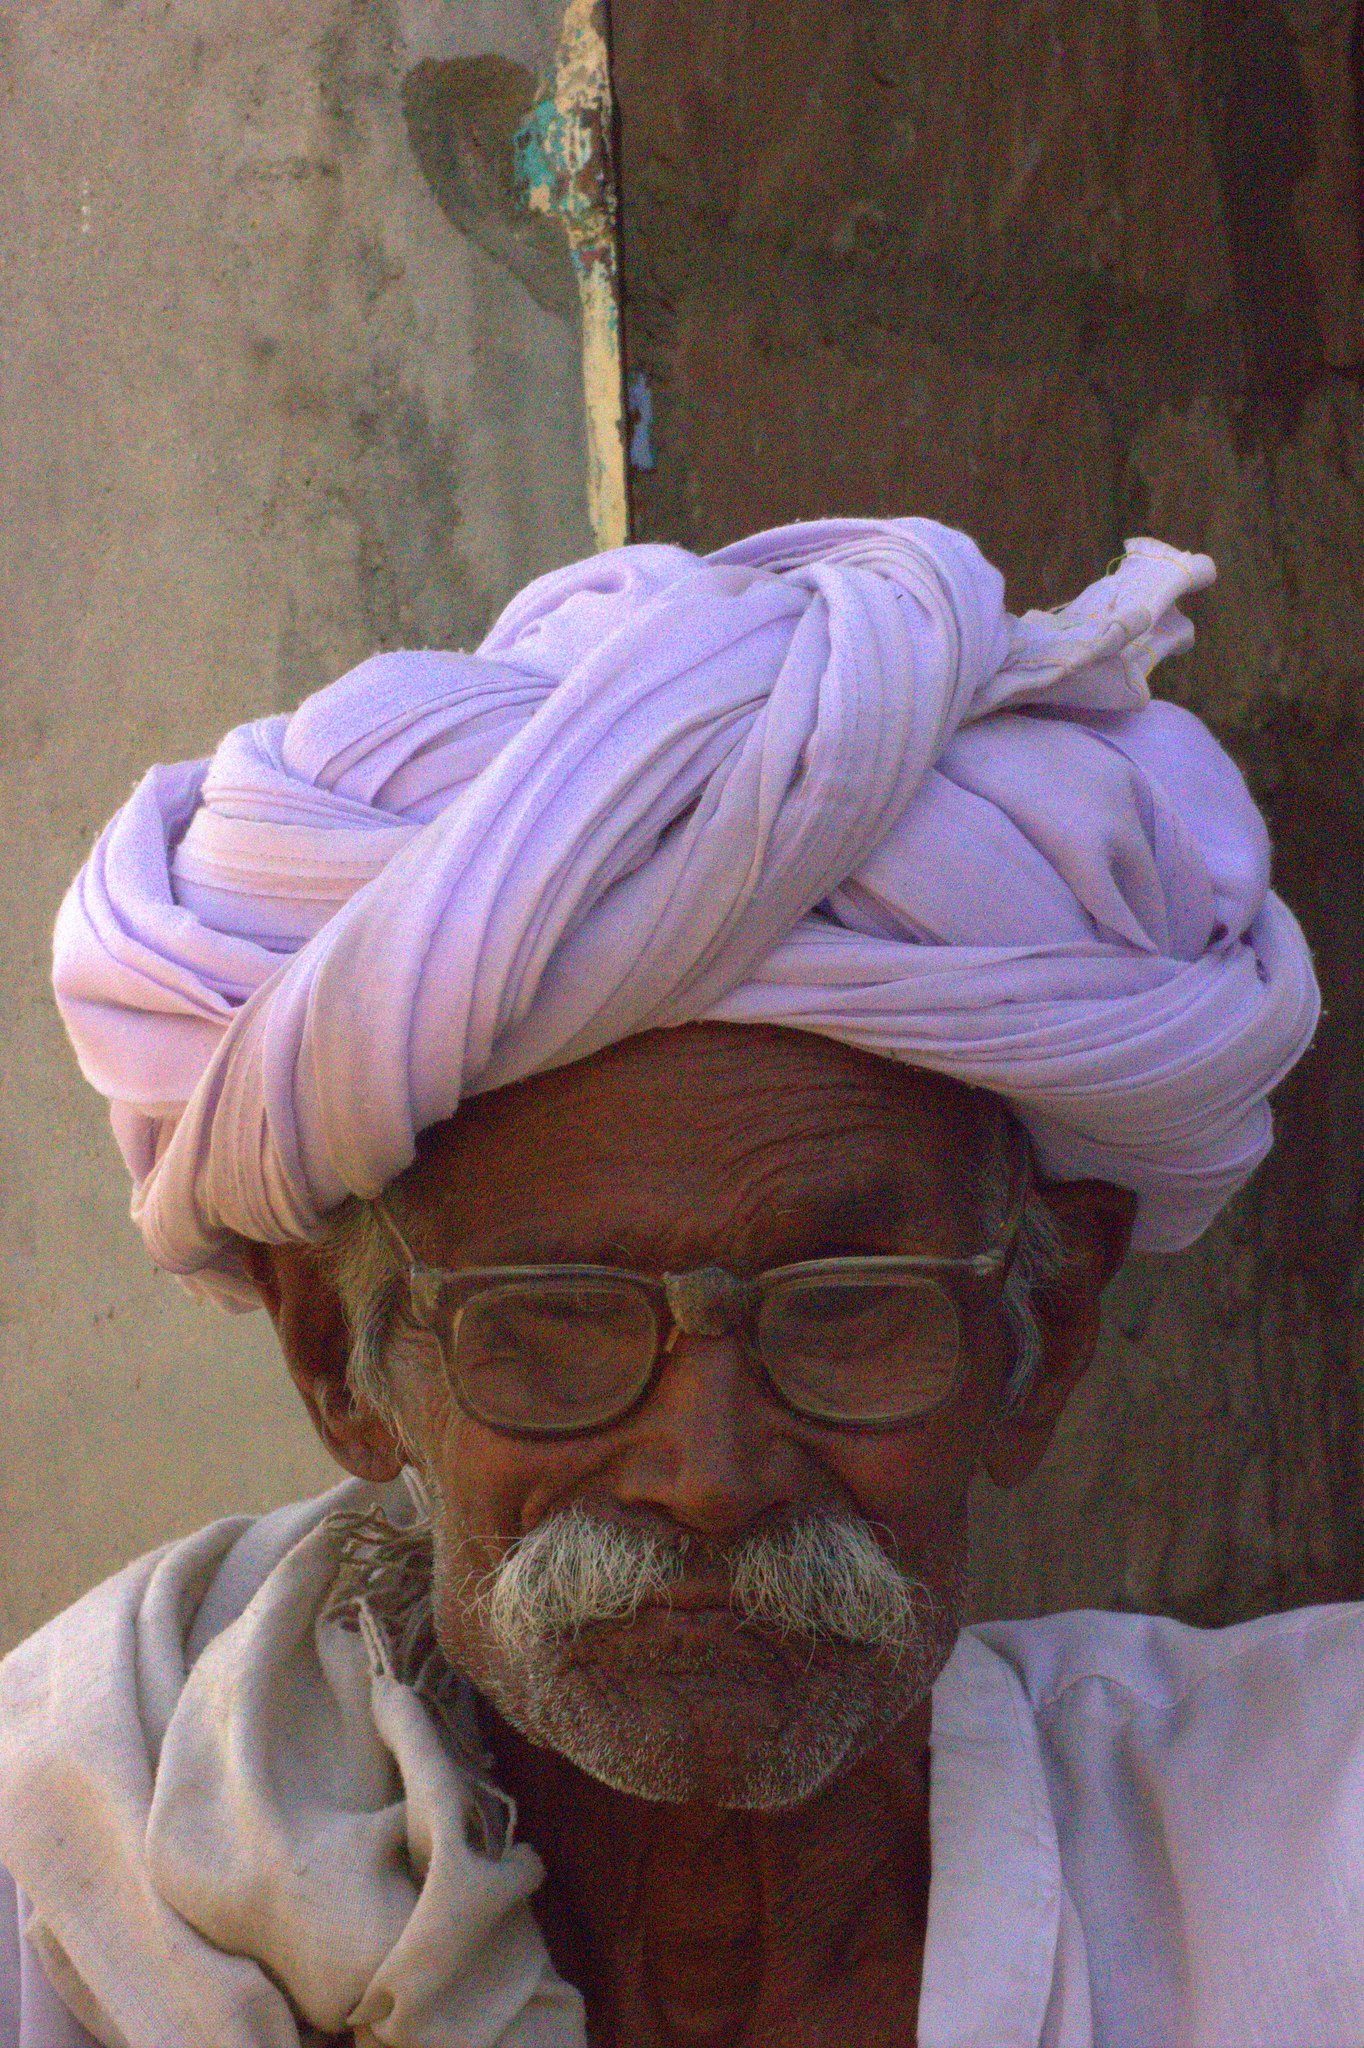 An old man in Salawas